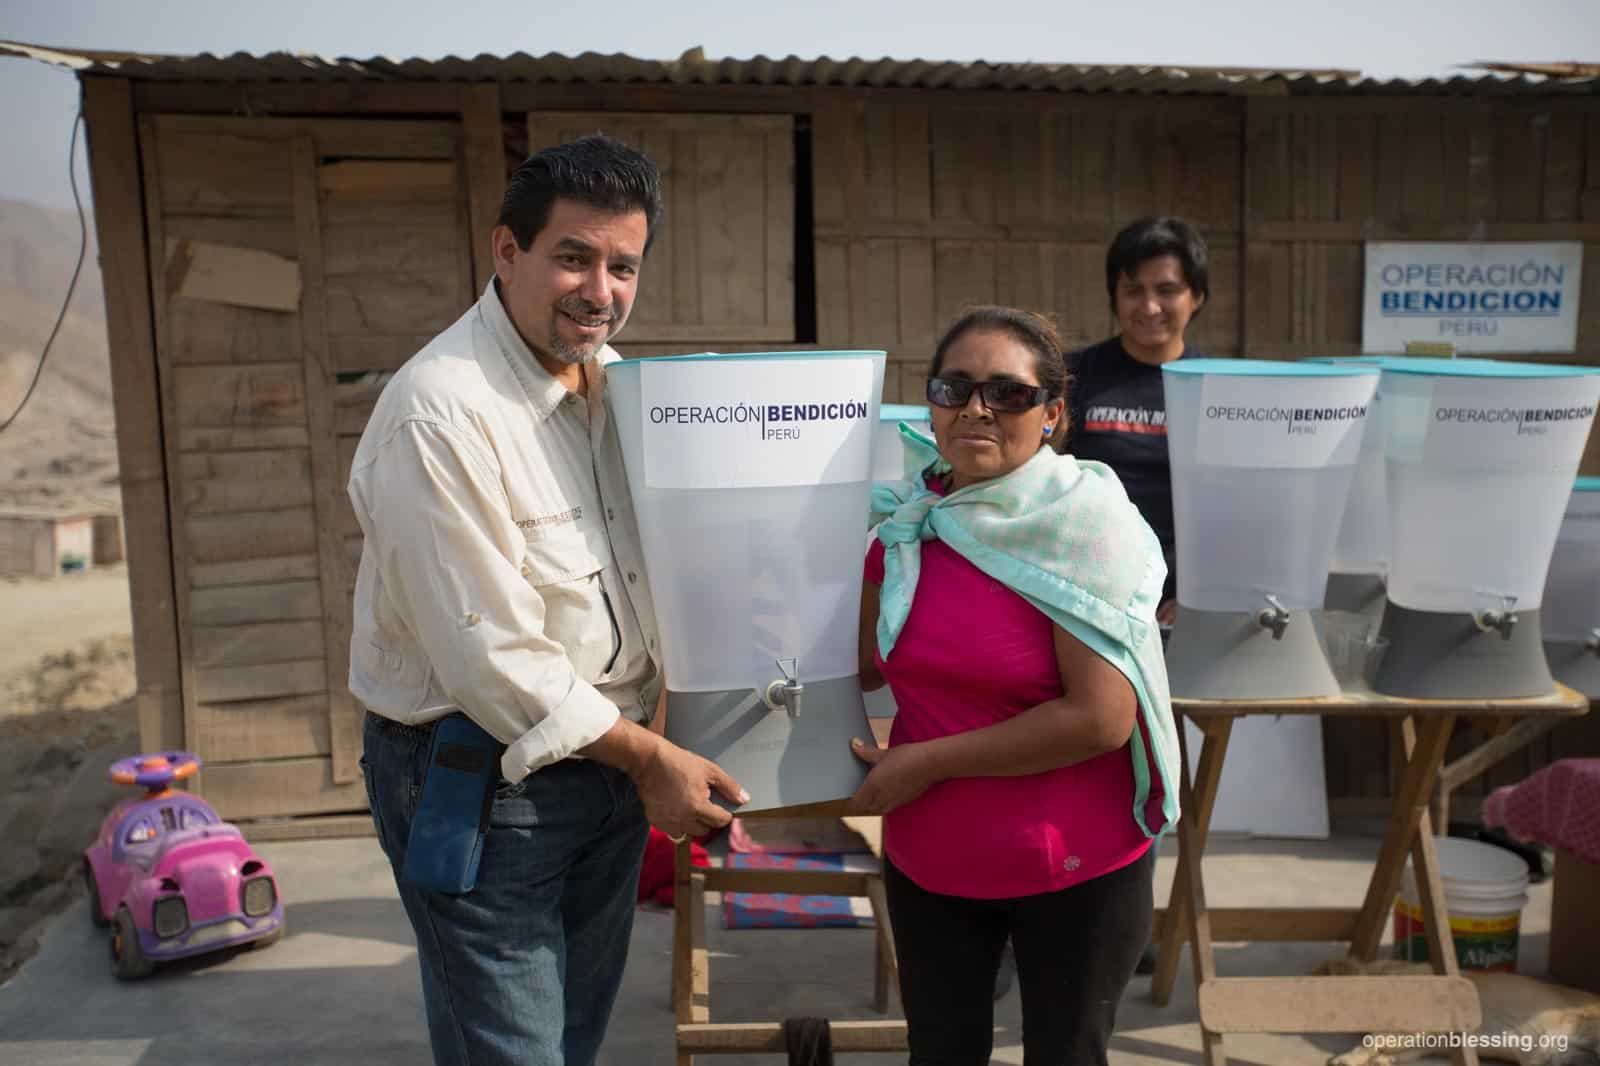 Operation Blessing's water programs manager, Ignacio Romero, distributes Kohler Clarity water filters to families in Terrazas del Vallecito, Peru.